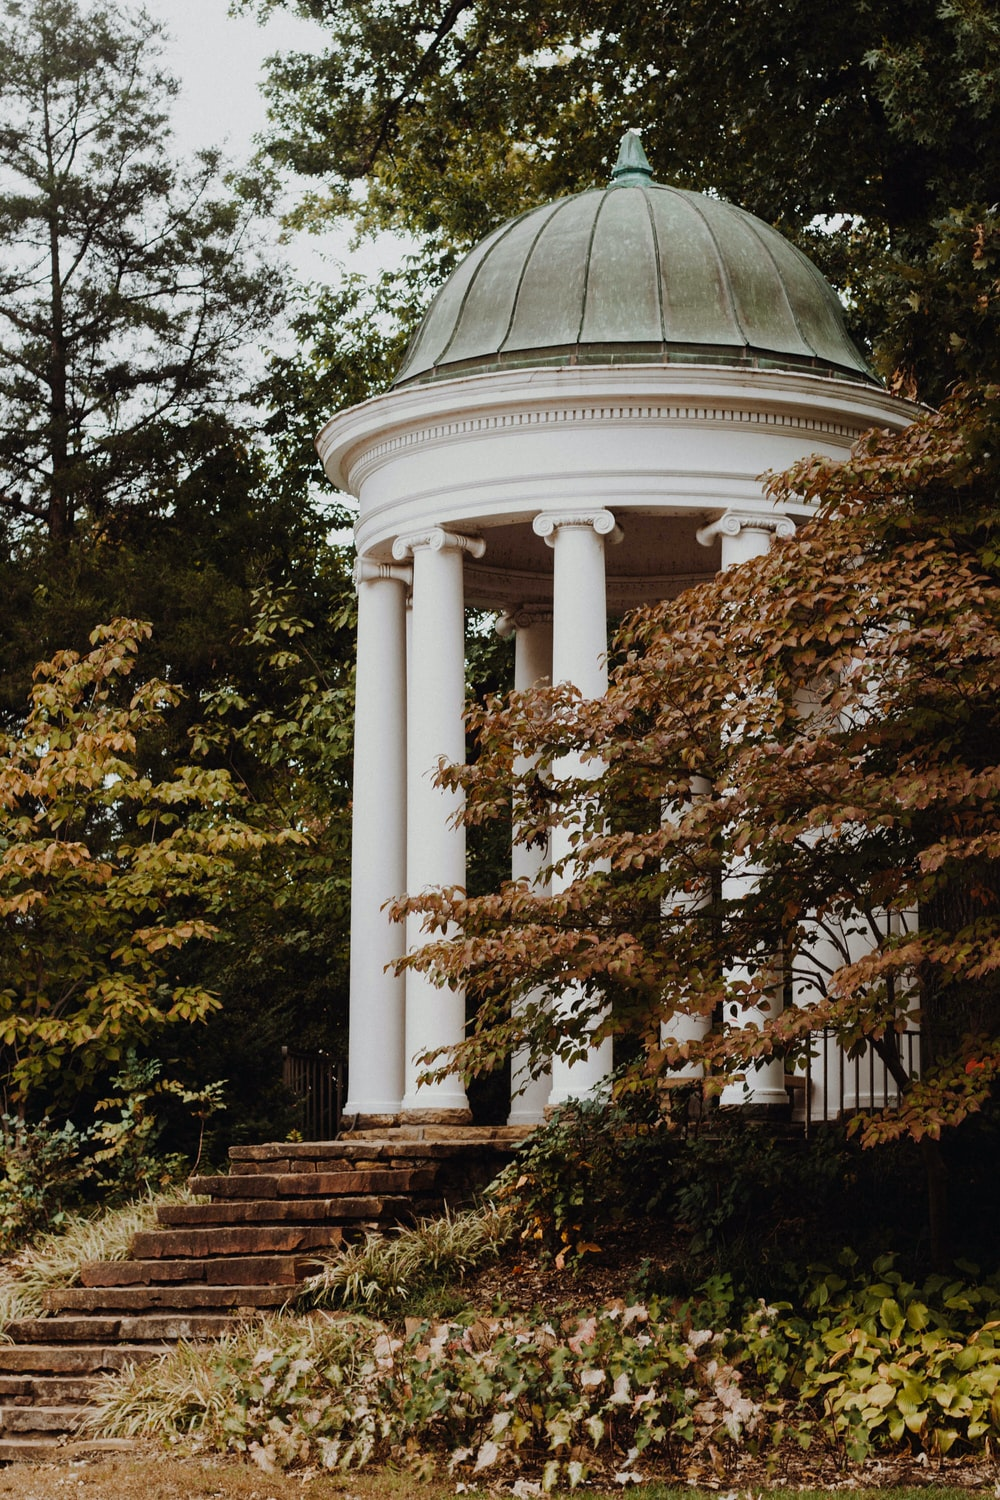 white dome gazebo surrounded with trees